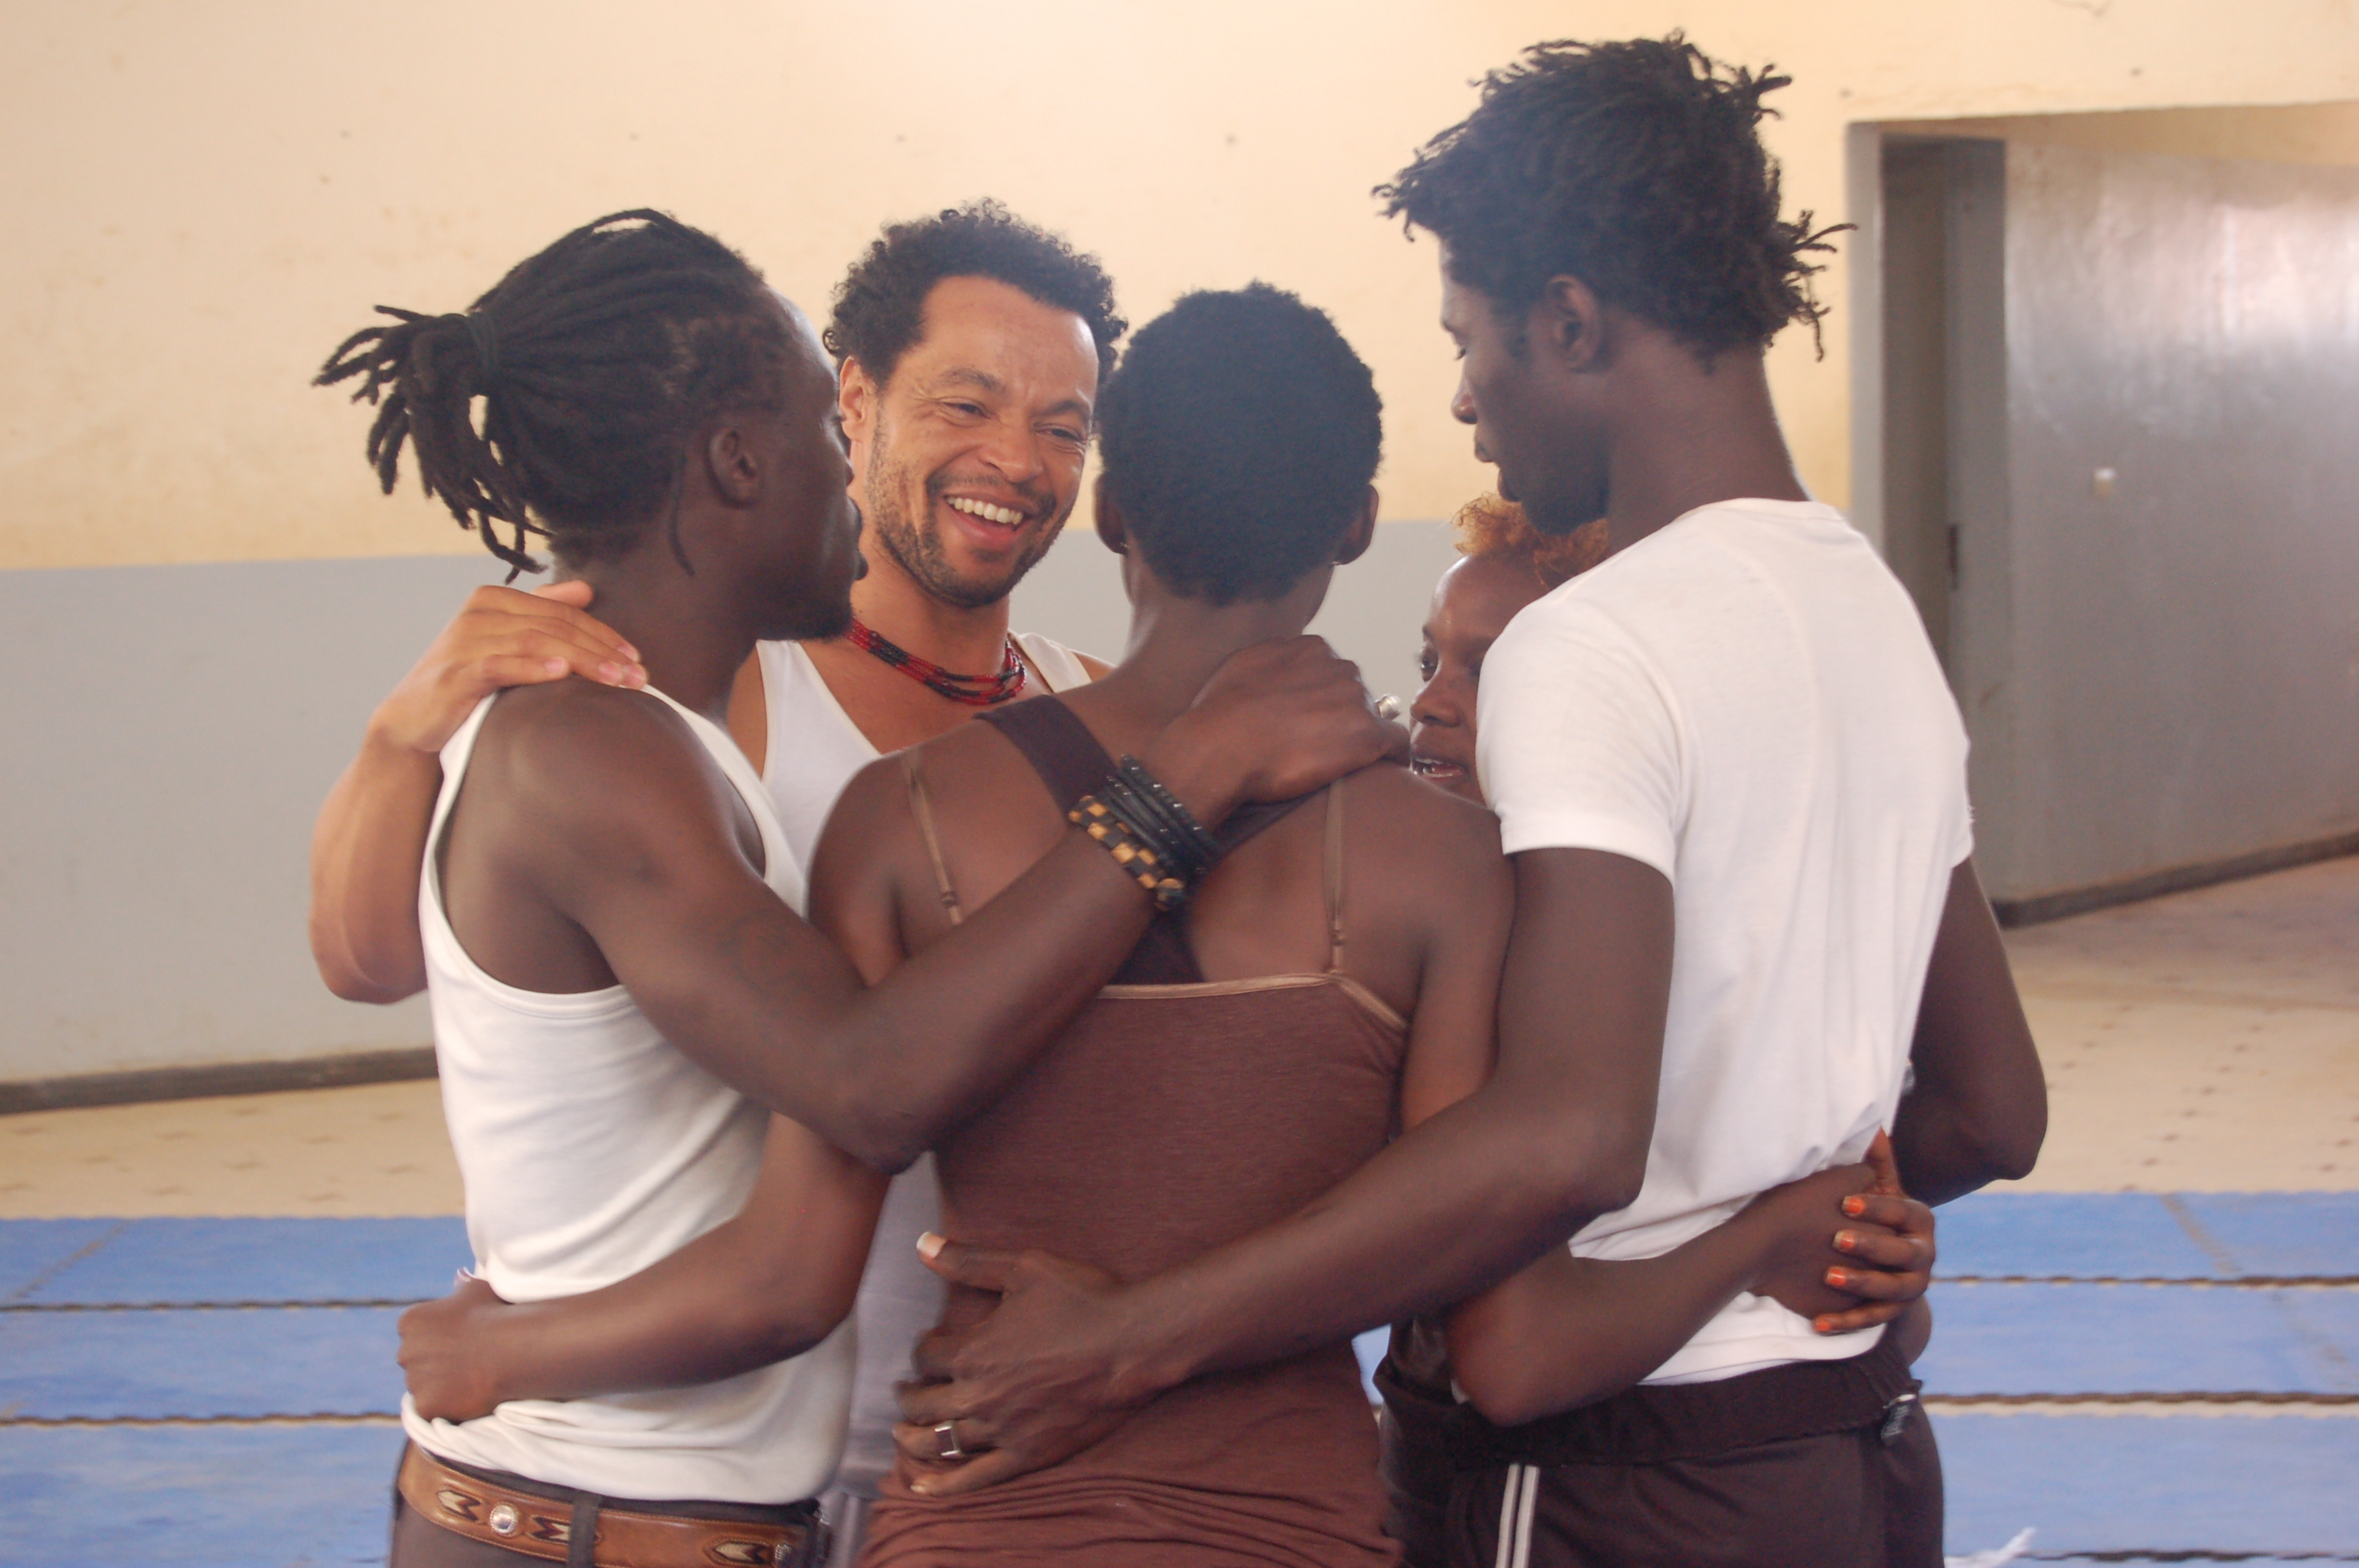 Dancers of 1er Temps with Benjamin Abras, Ouakam, May 2014